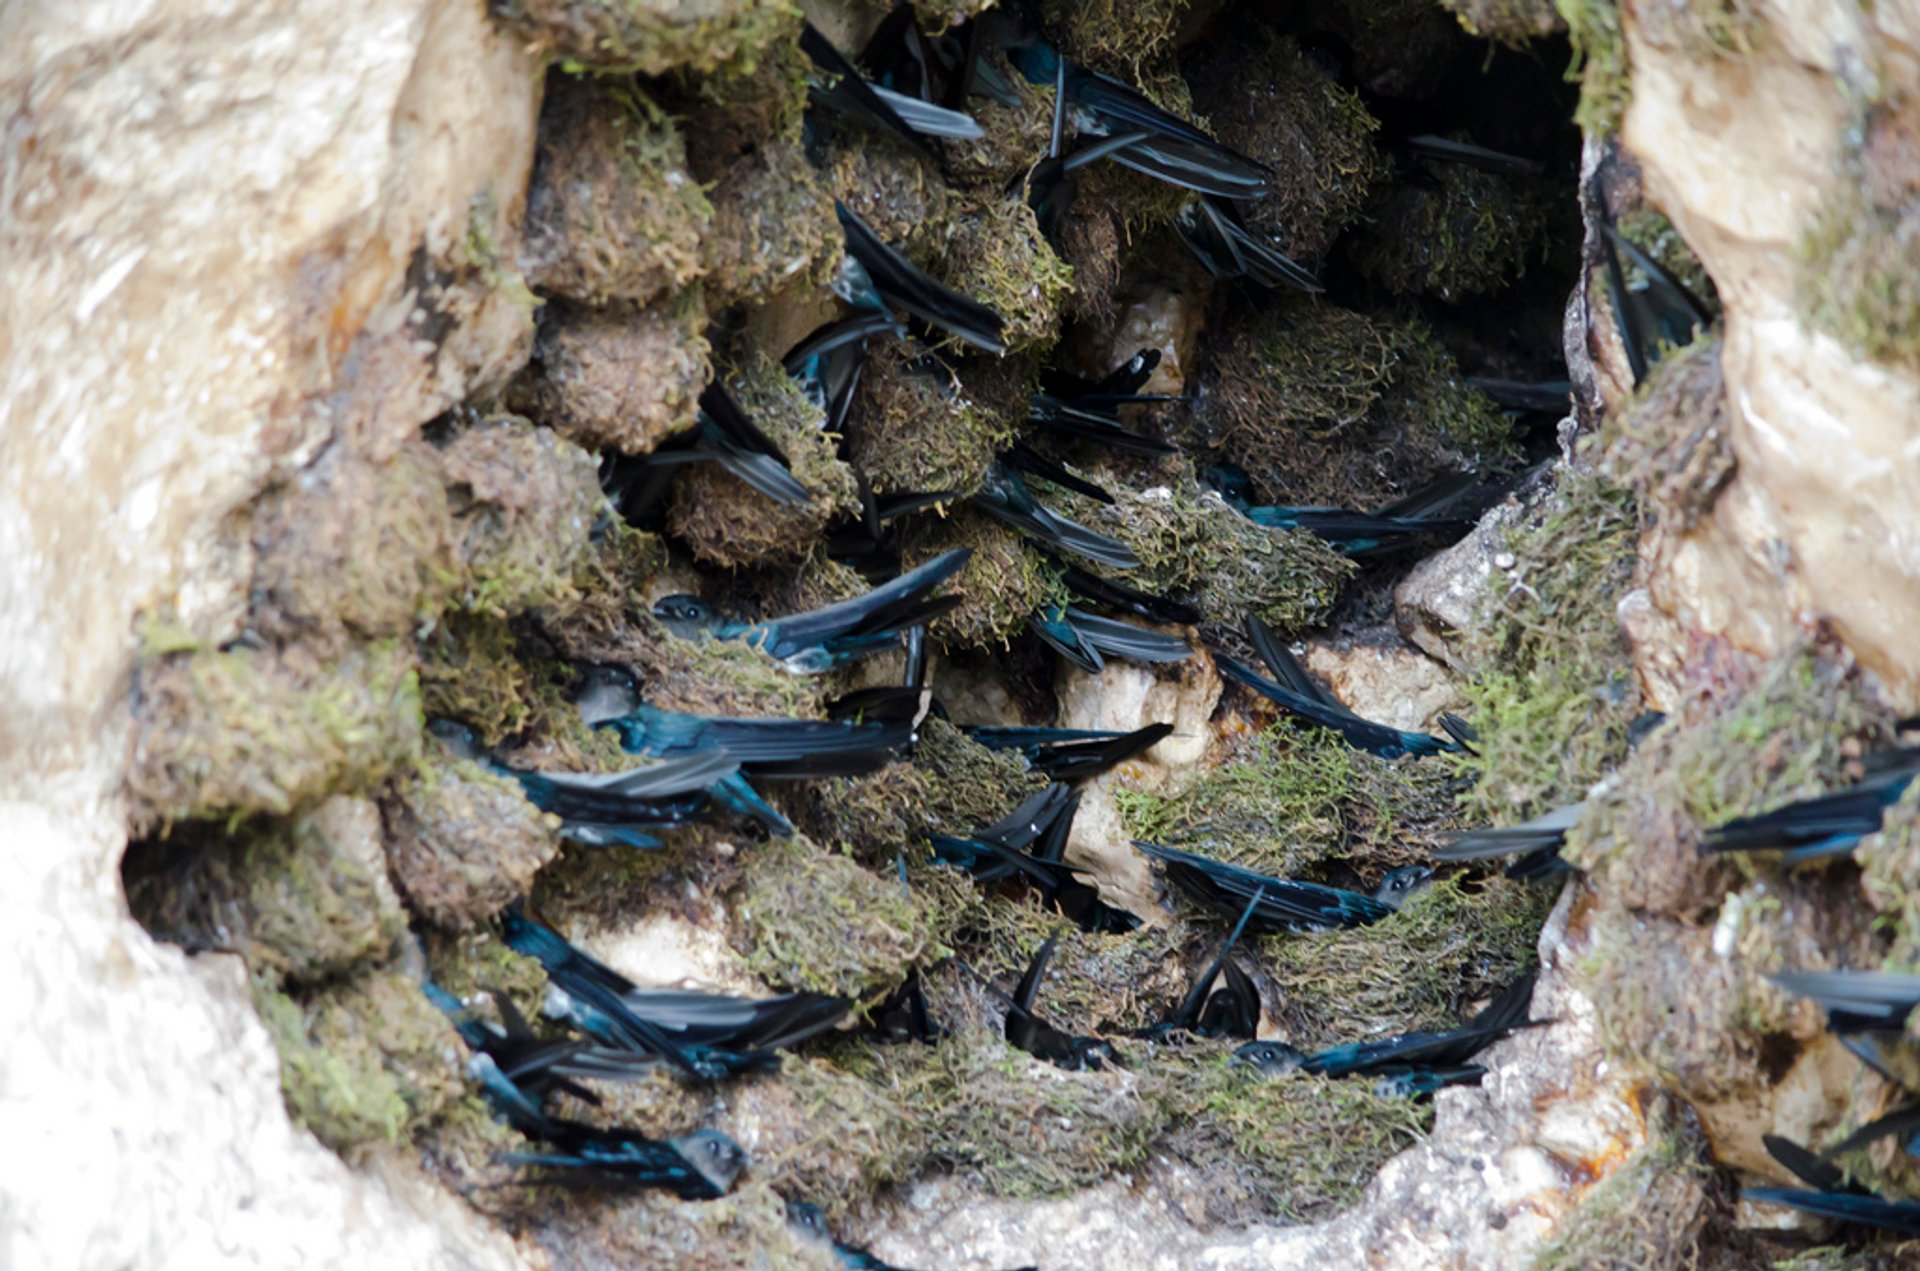 Harvest of Edible Swiftlet Nests in Malaysia 2020 - Best Time